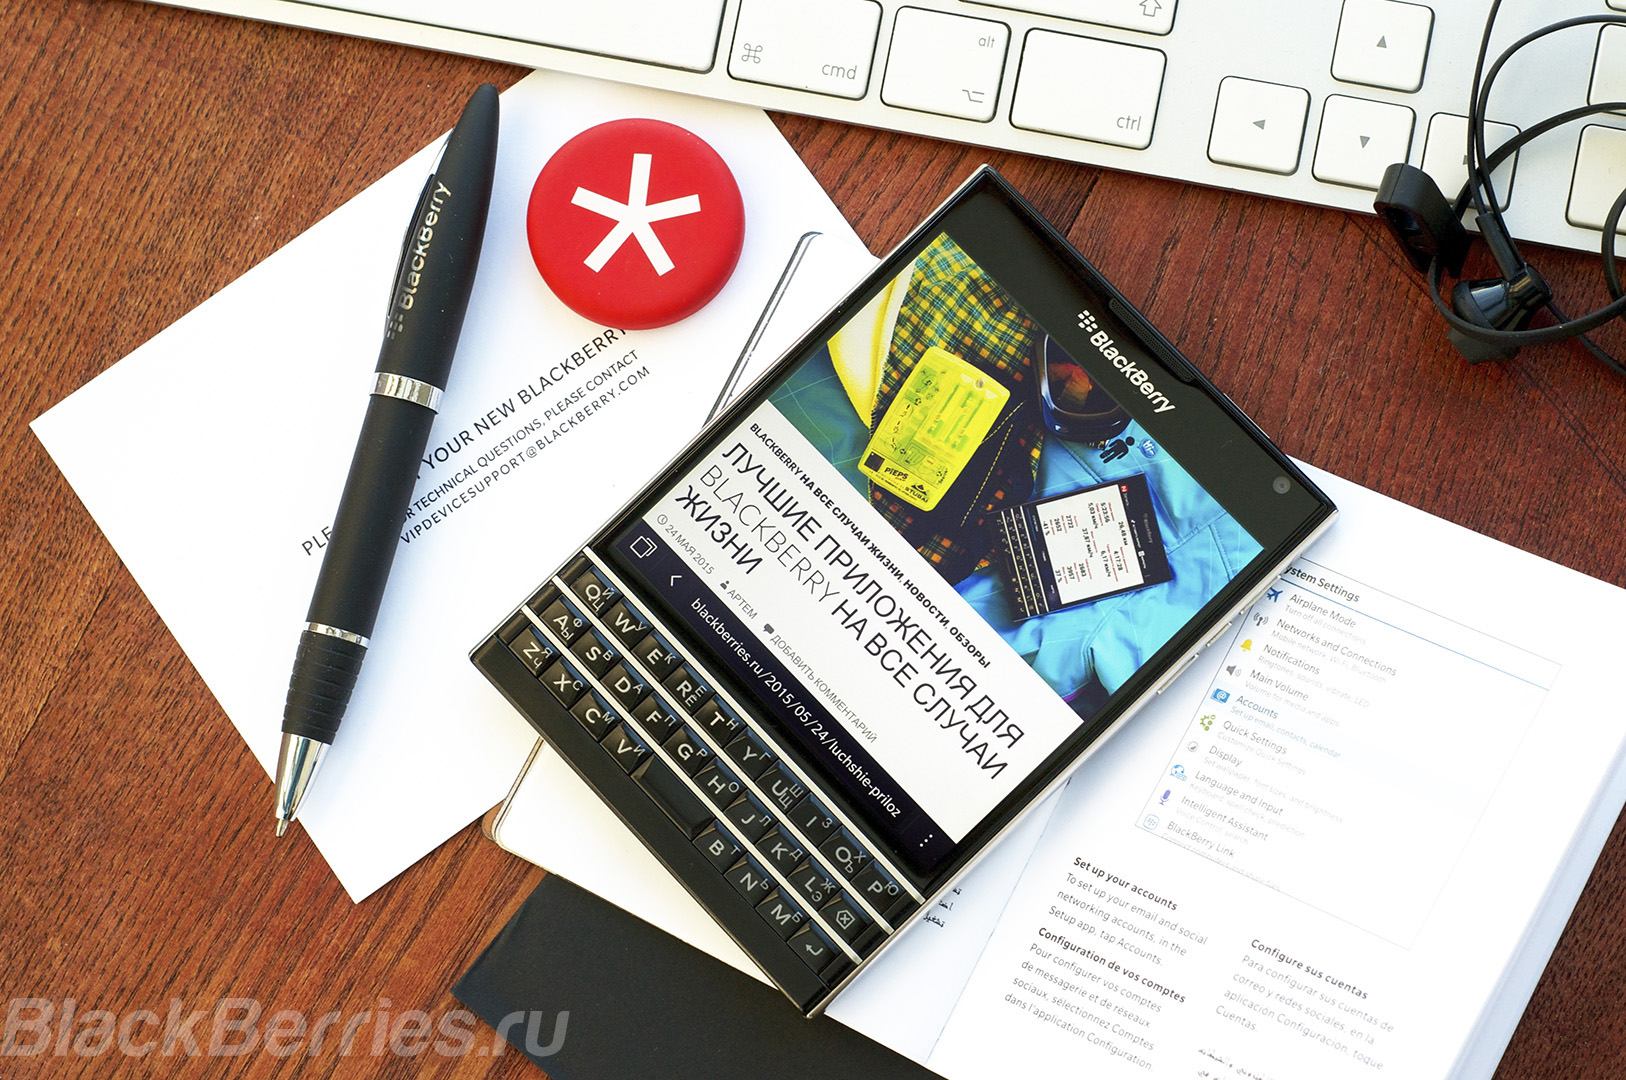 BlackBerry-Passport-Review-2016-09